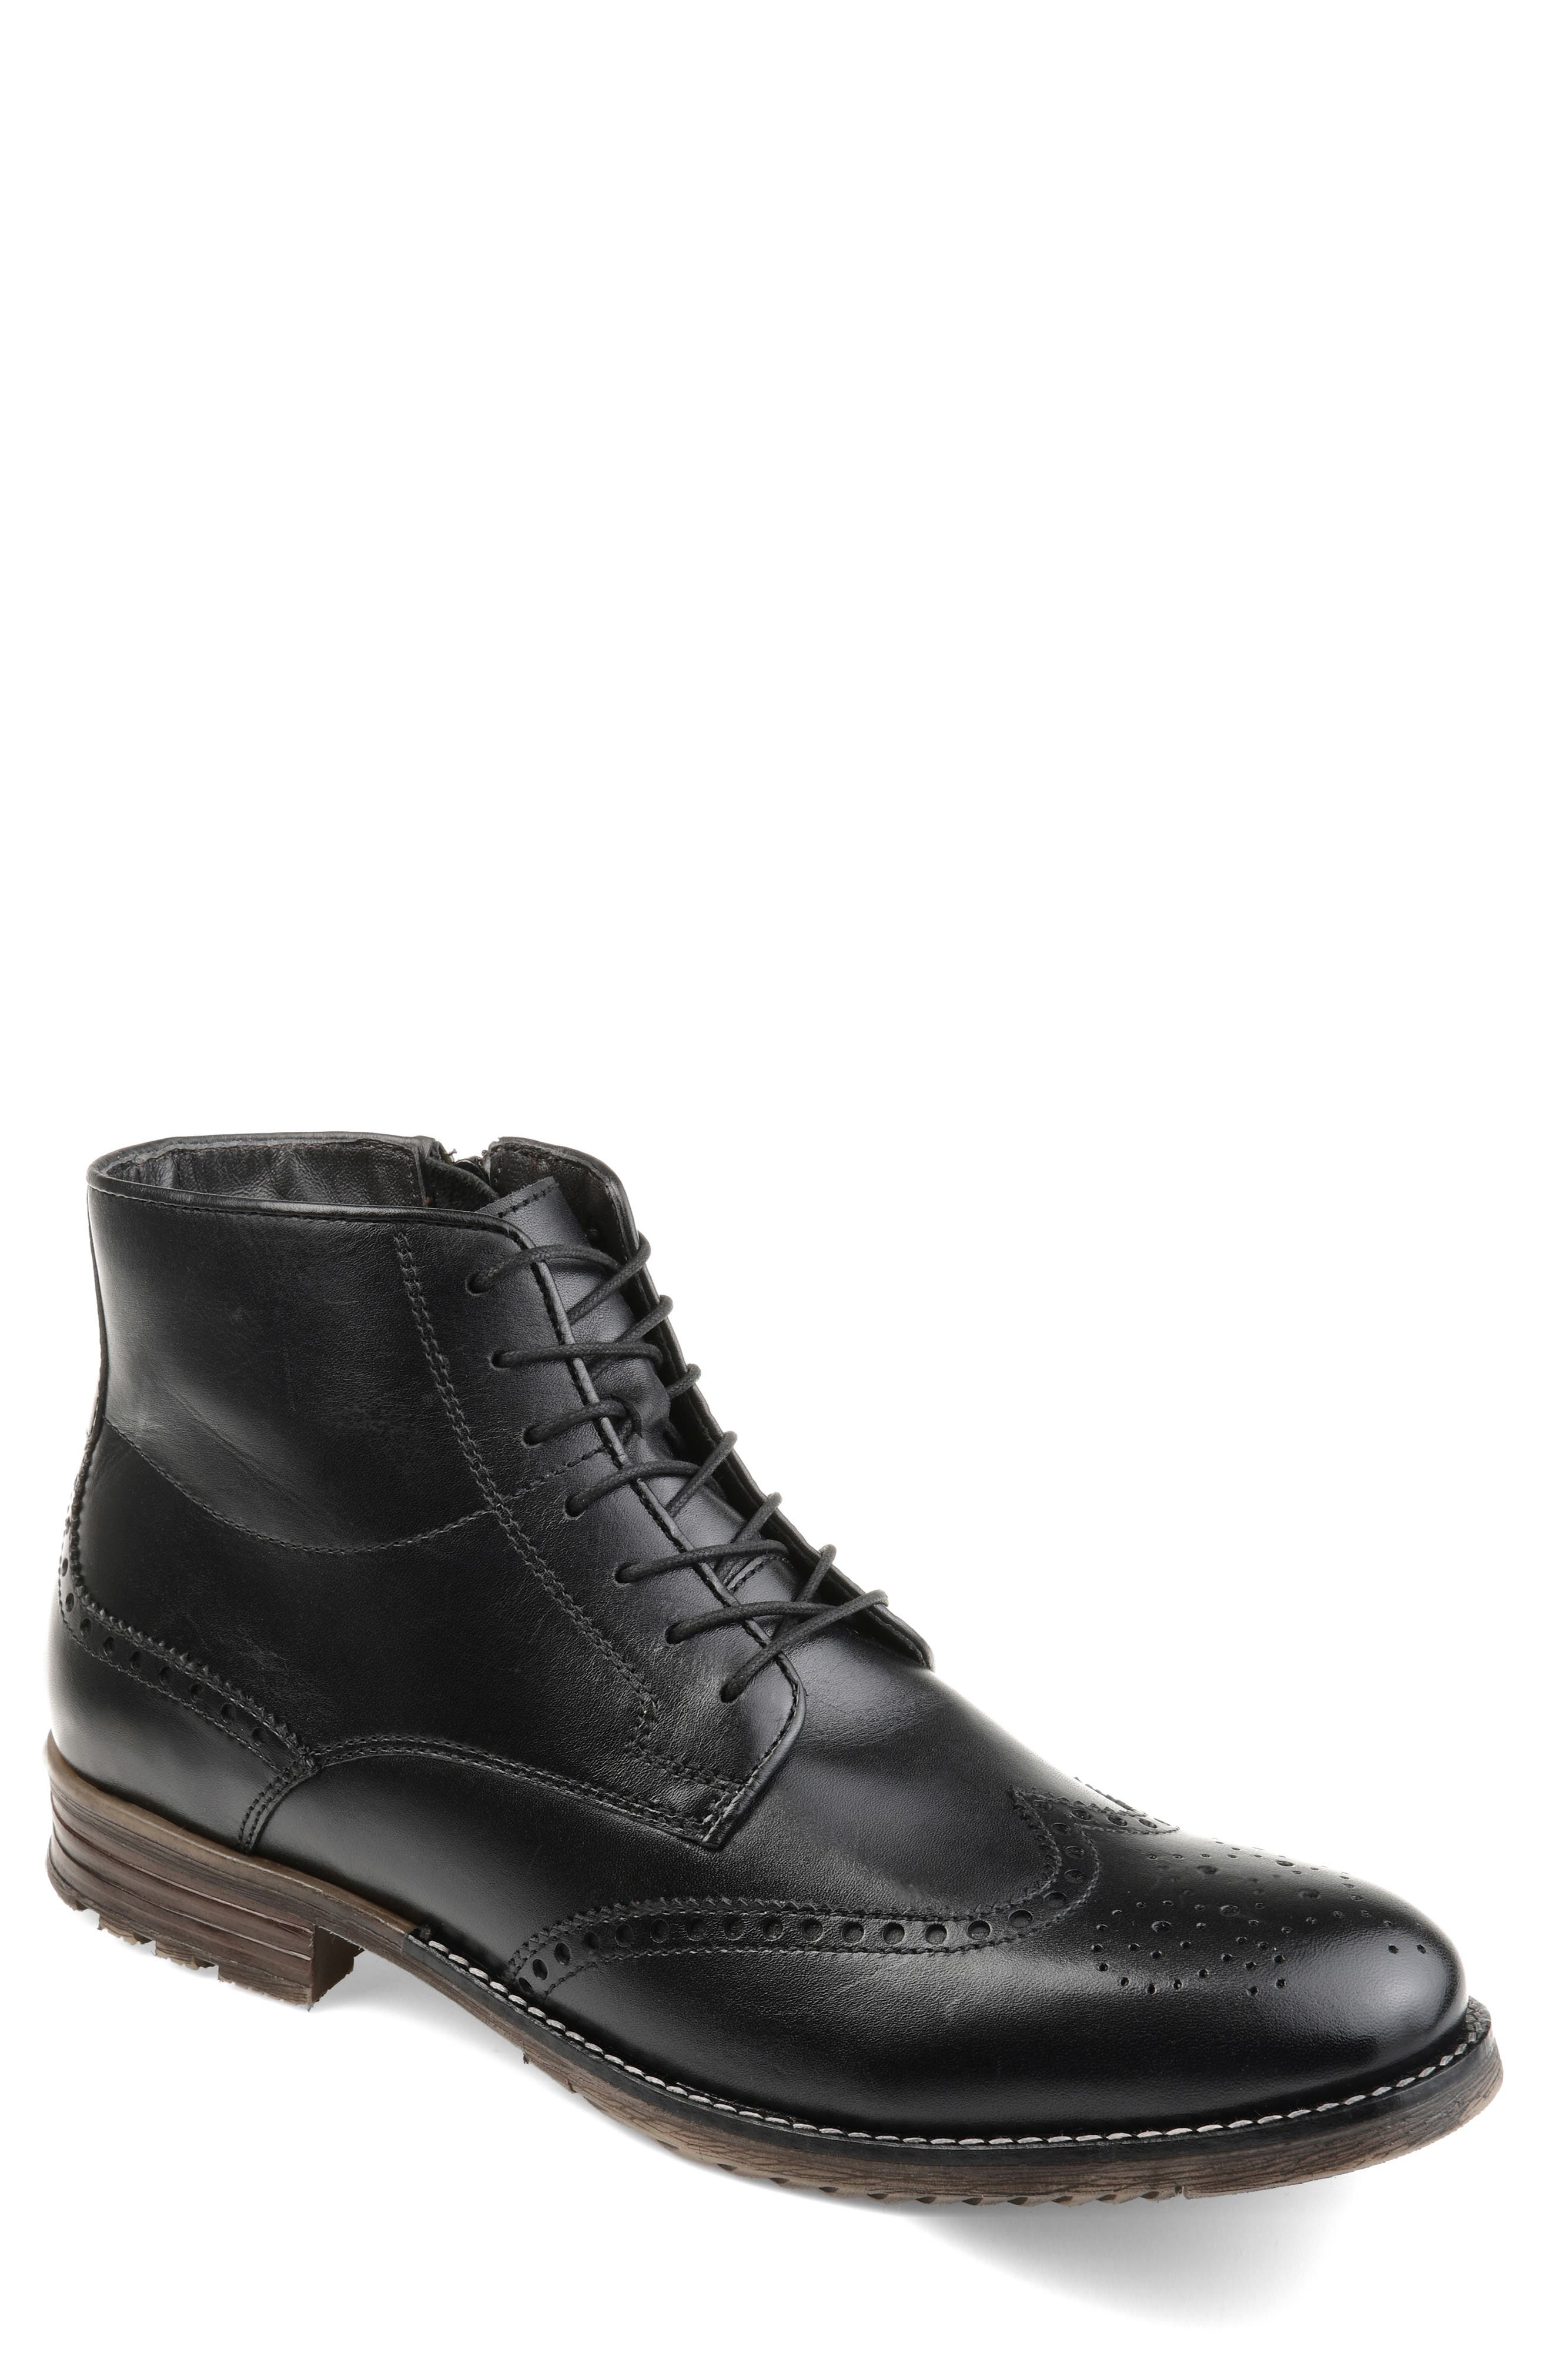 THOMAS AND VINE, Ryker Wingtip Boot, Main thumbnail 1, color, BLACK LEATHER